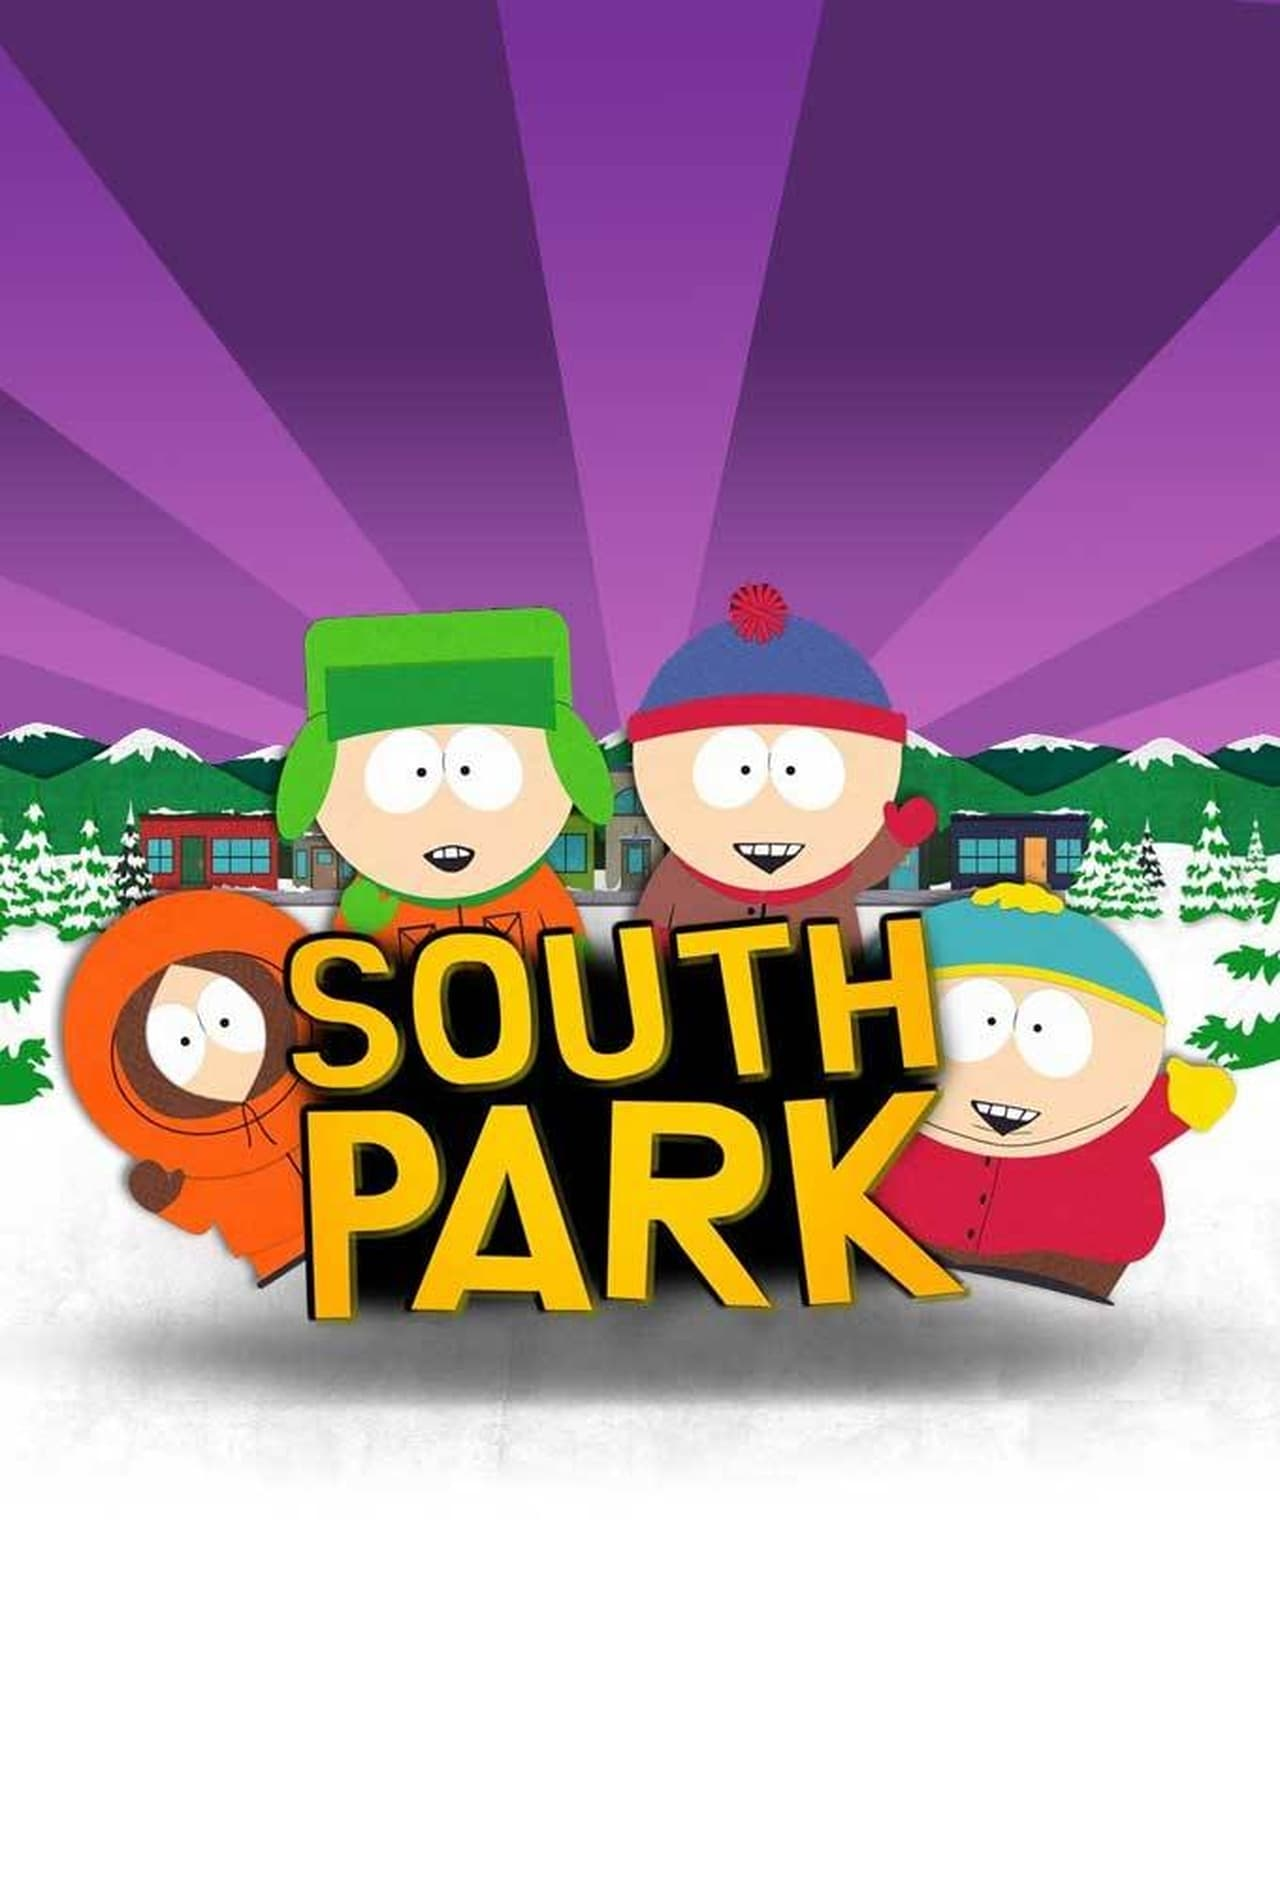 South Park Season 24 Episode 0 - The Pandemic Special